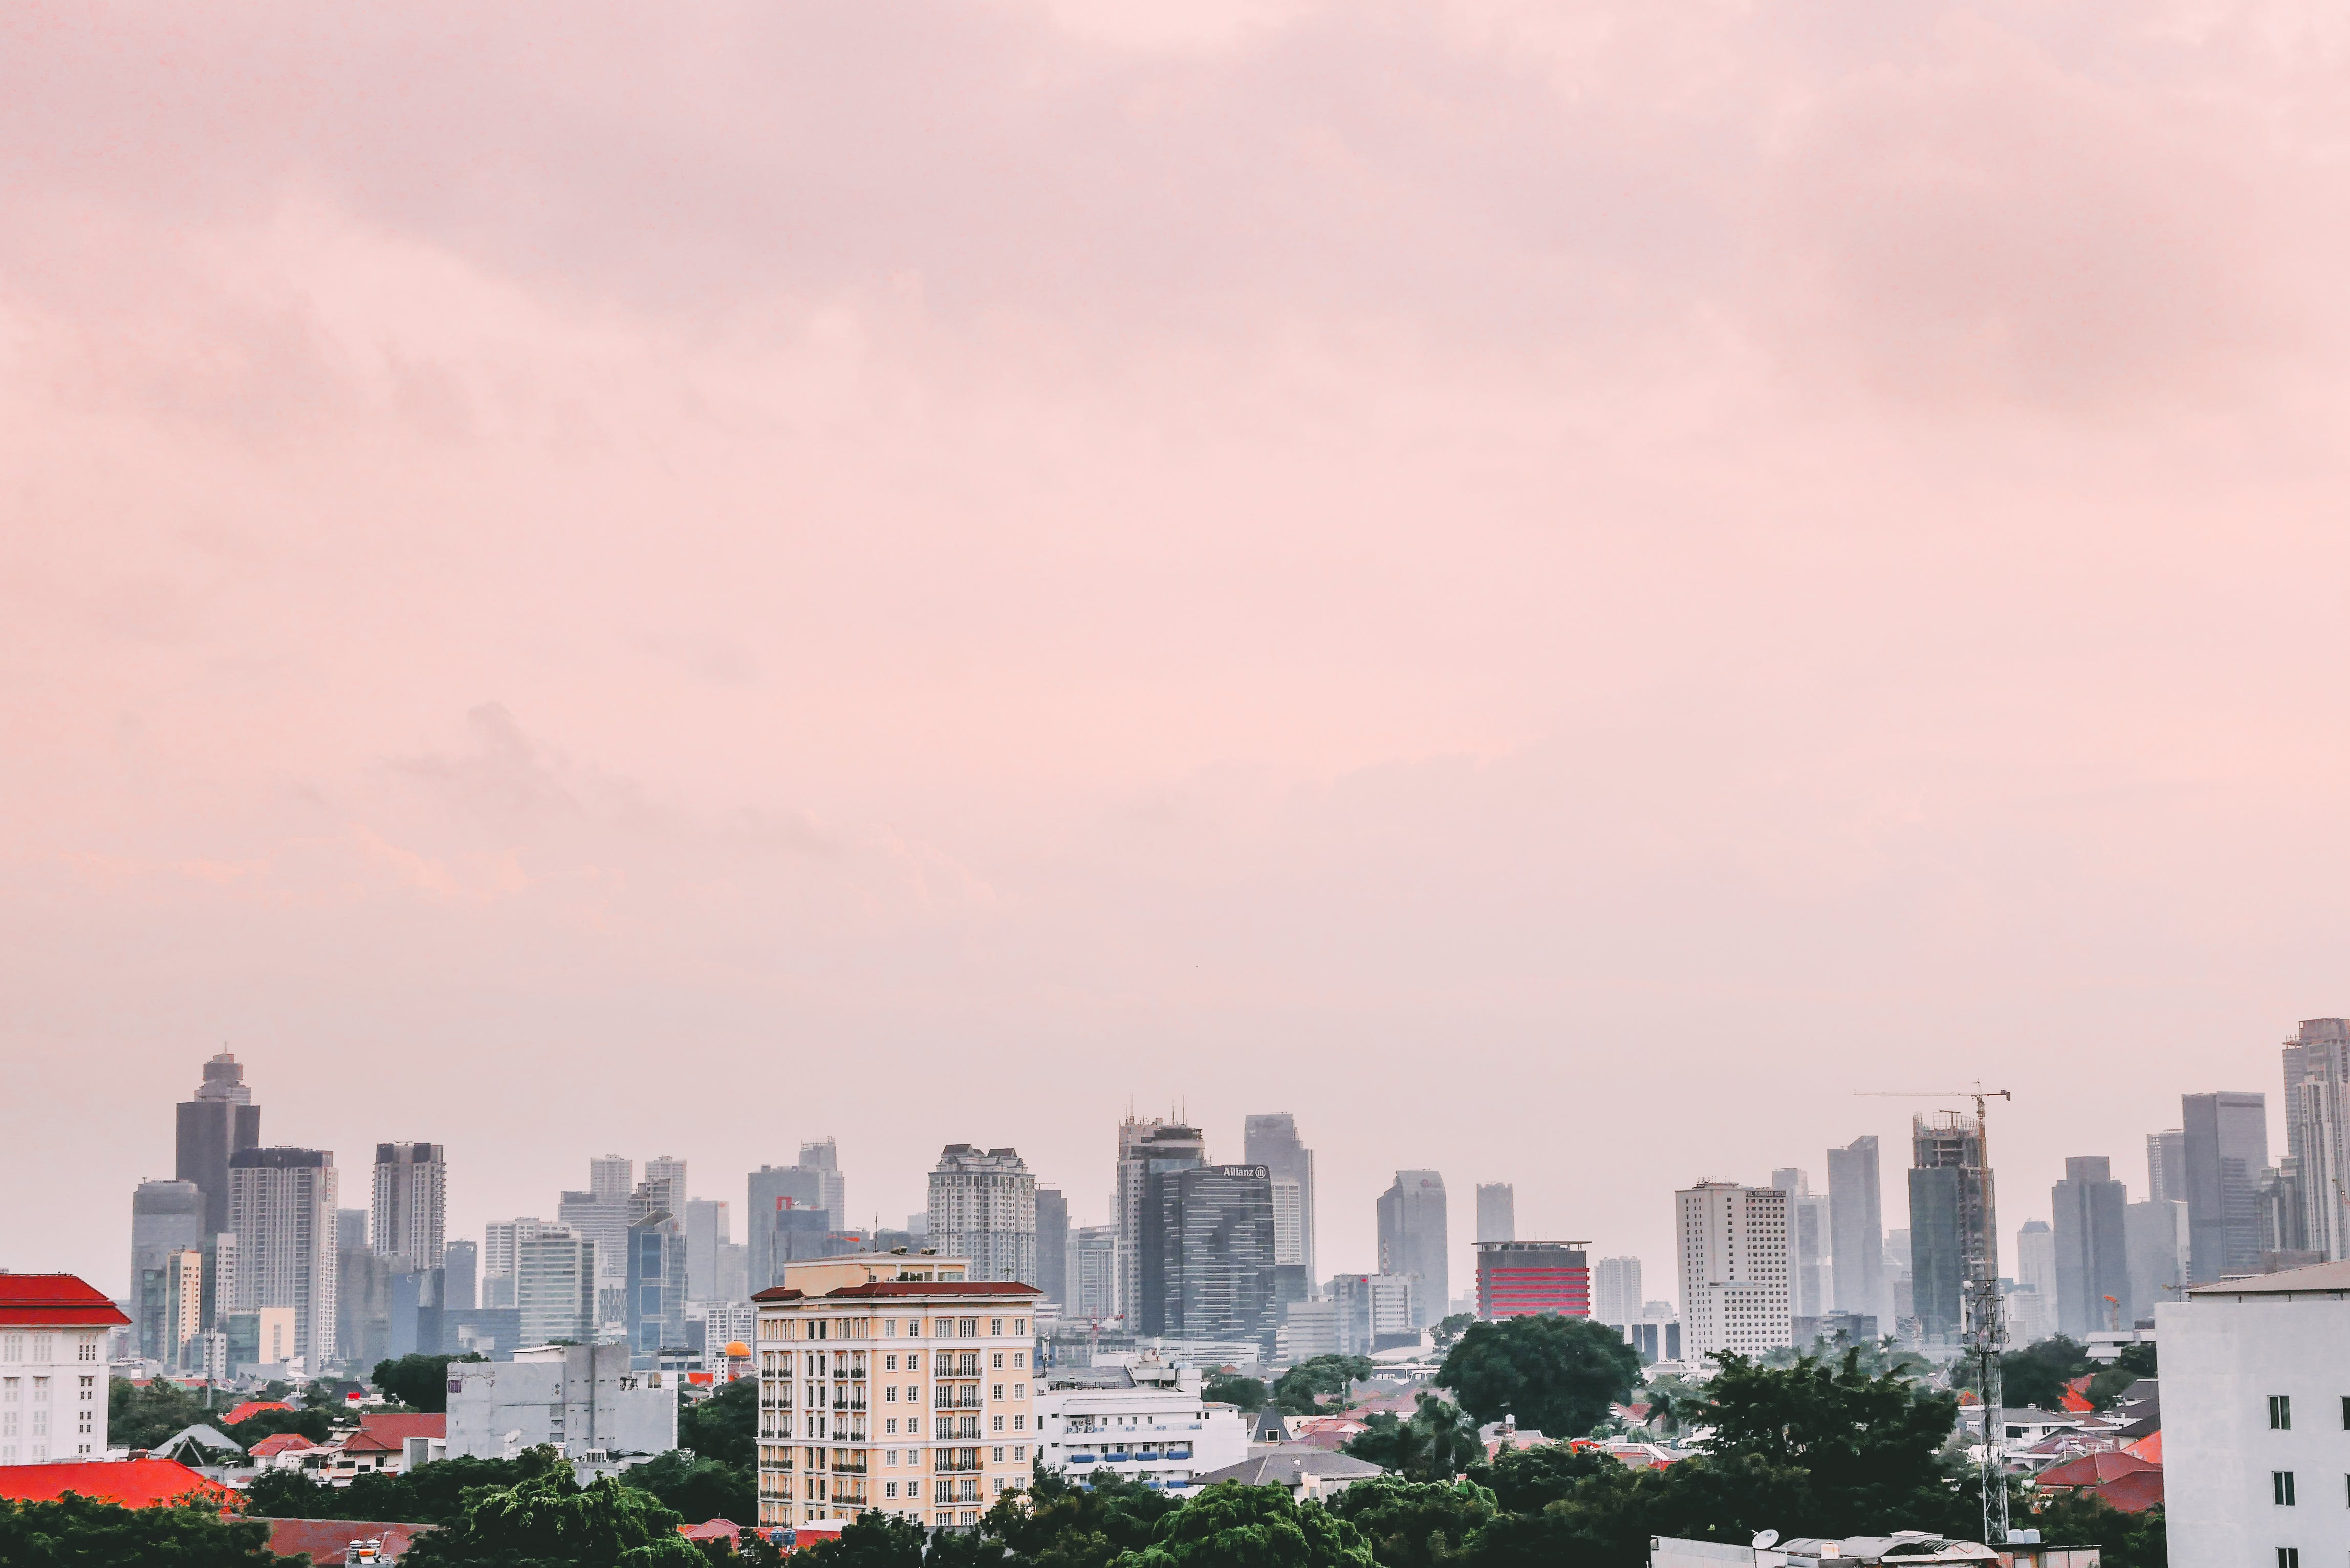 Free stock photo of buildings, cityscape, cityview, indonesia